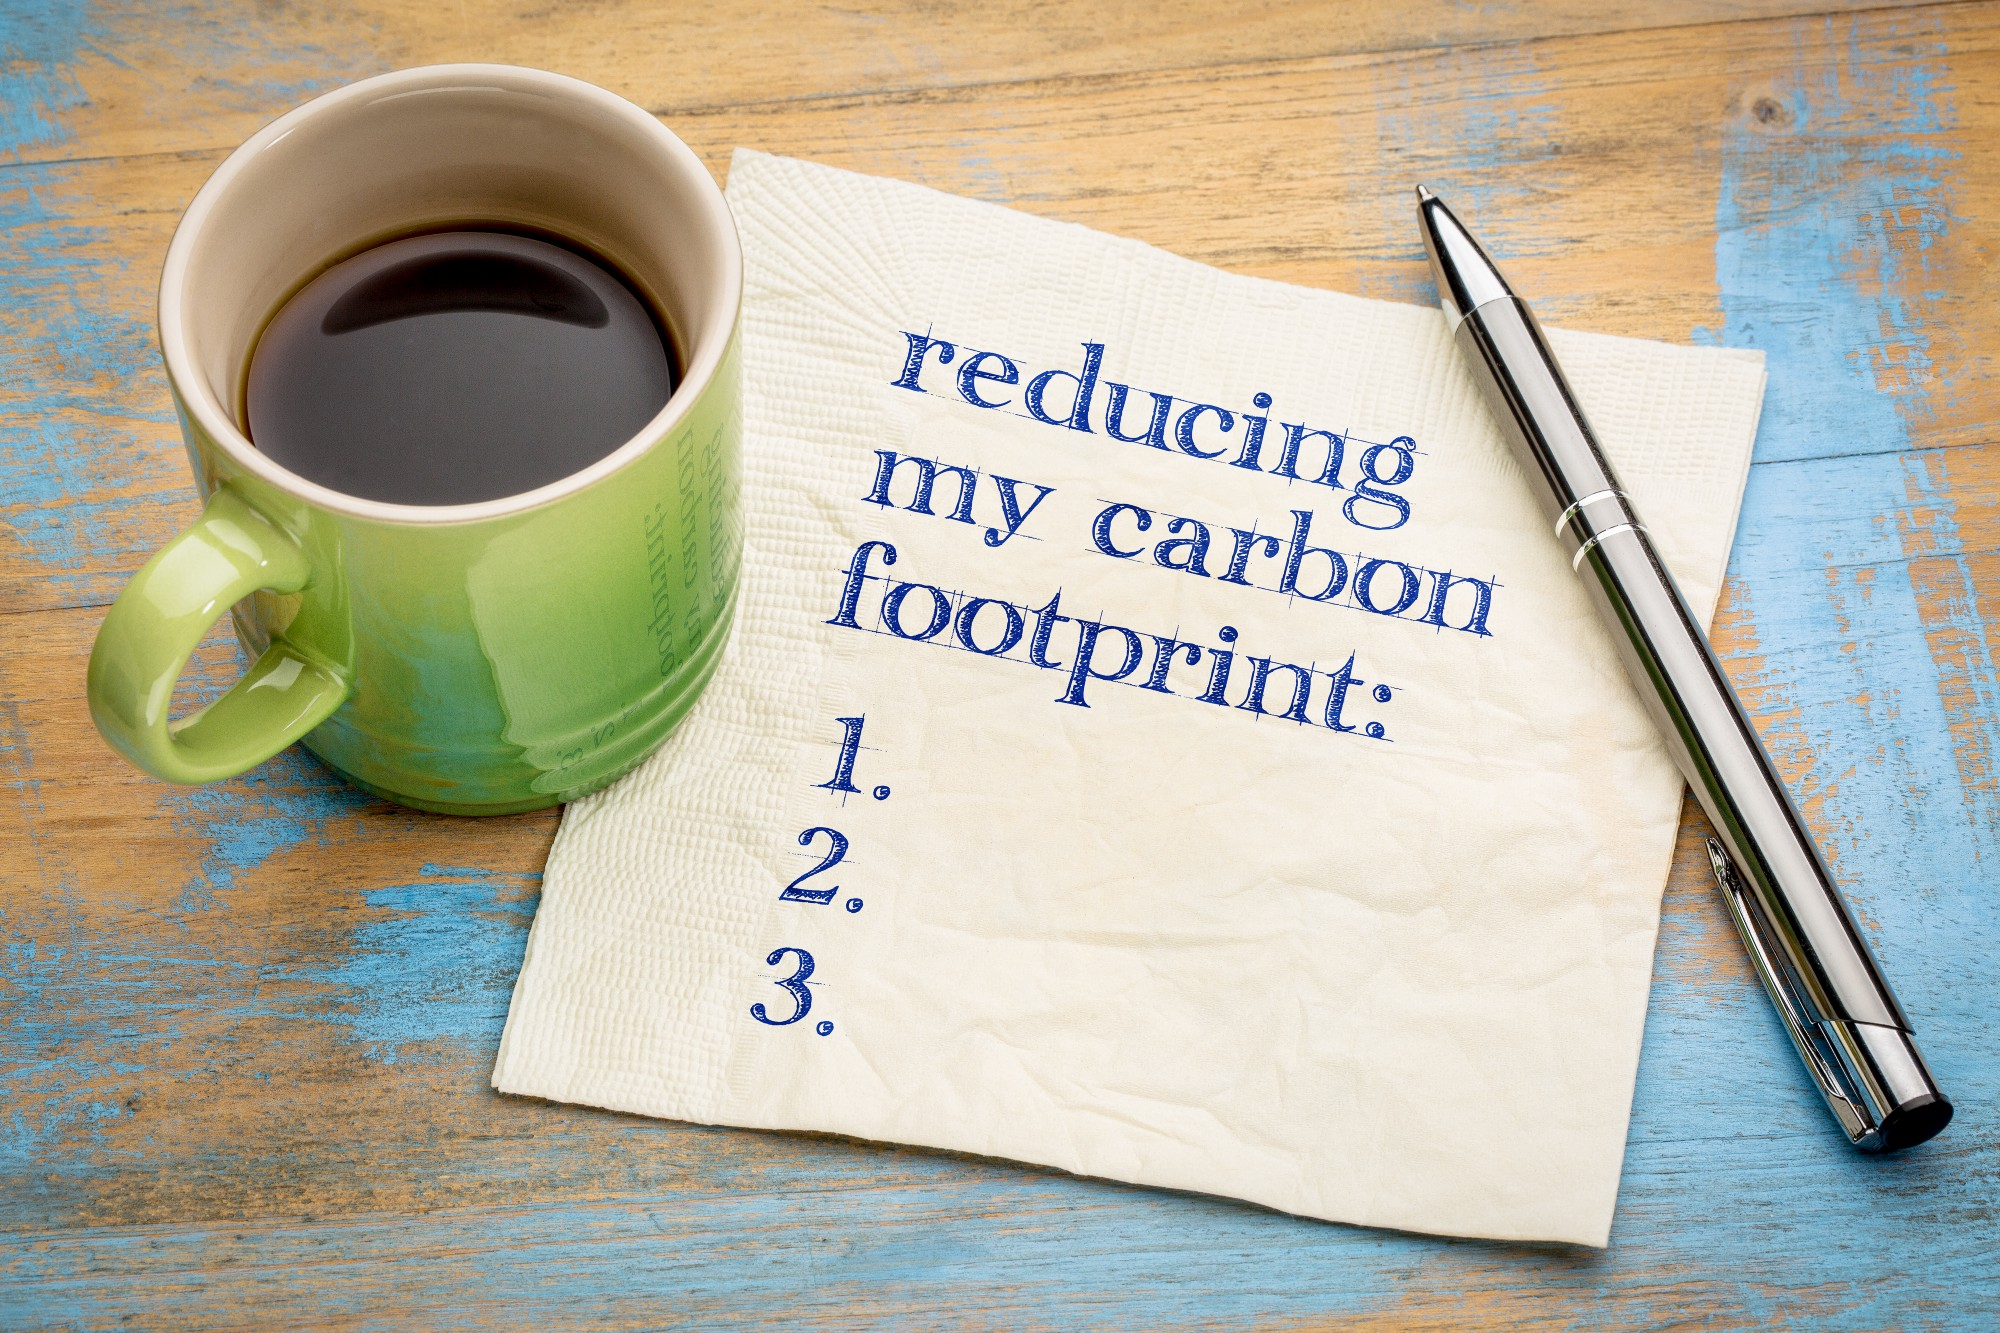 A picture of a coffee cup and a napkin that says 'reducing my carbon footprint: 1. 2. 3.'